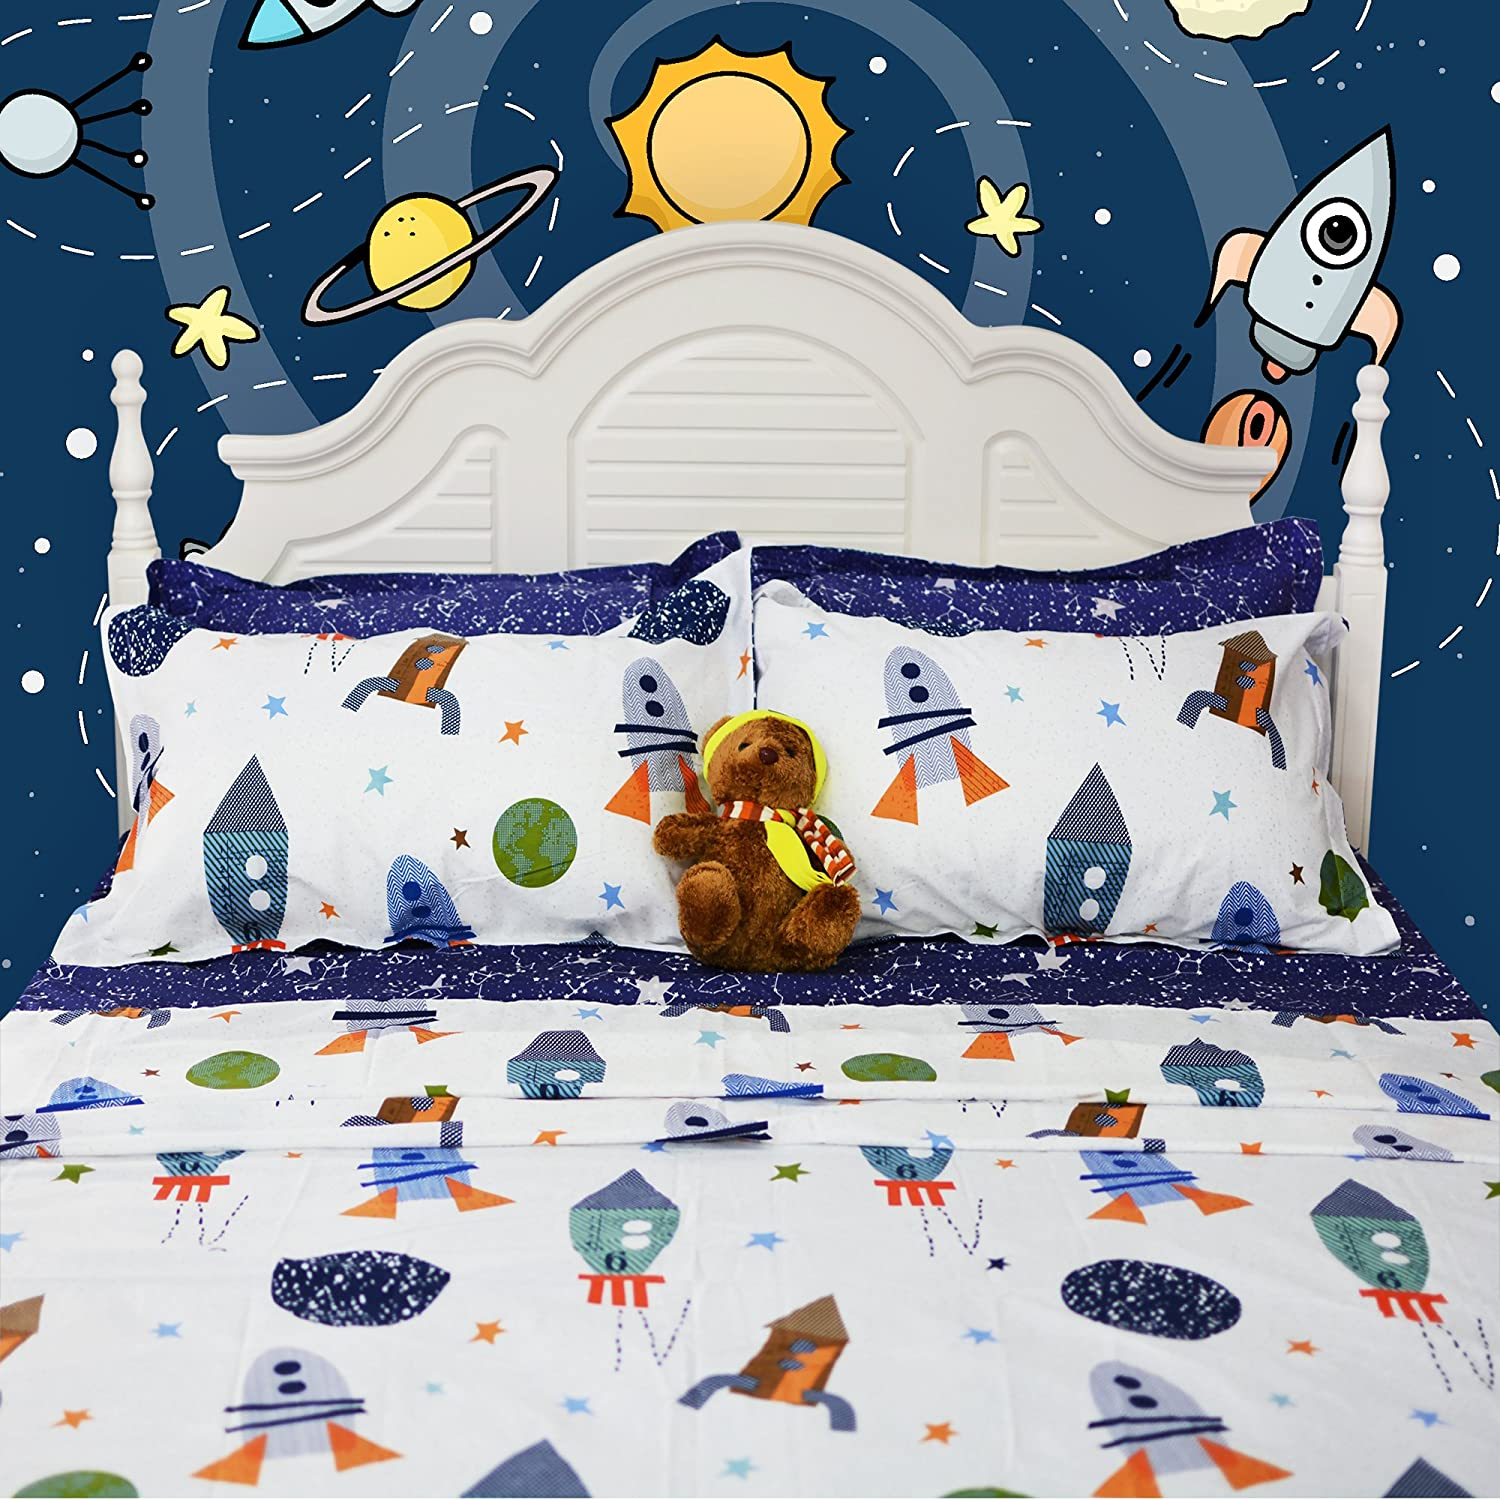 Brandream Space Bedding For Kids Boys Bedding Galaxy Bedding Sets Rockets Super Soft Bed Sheet Set Cotton Bed Sheets Sets